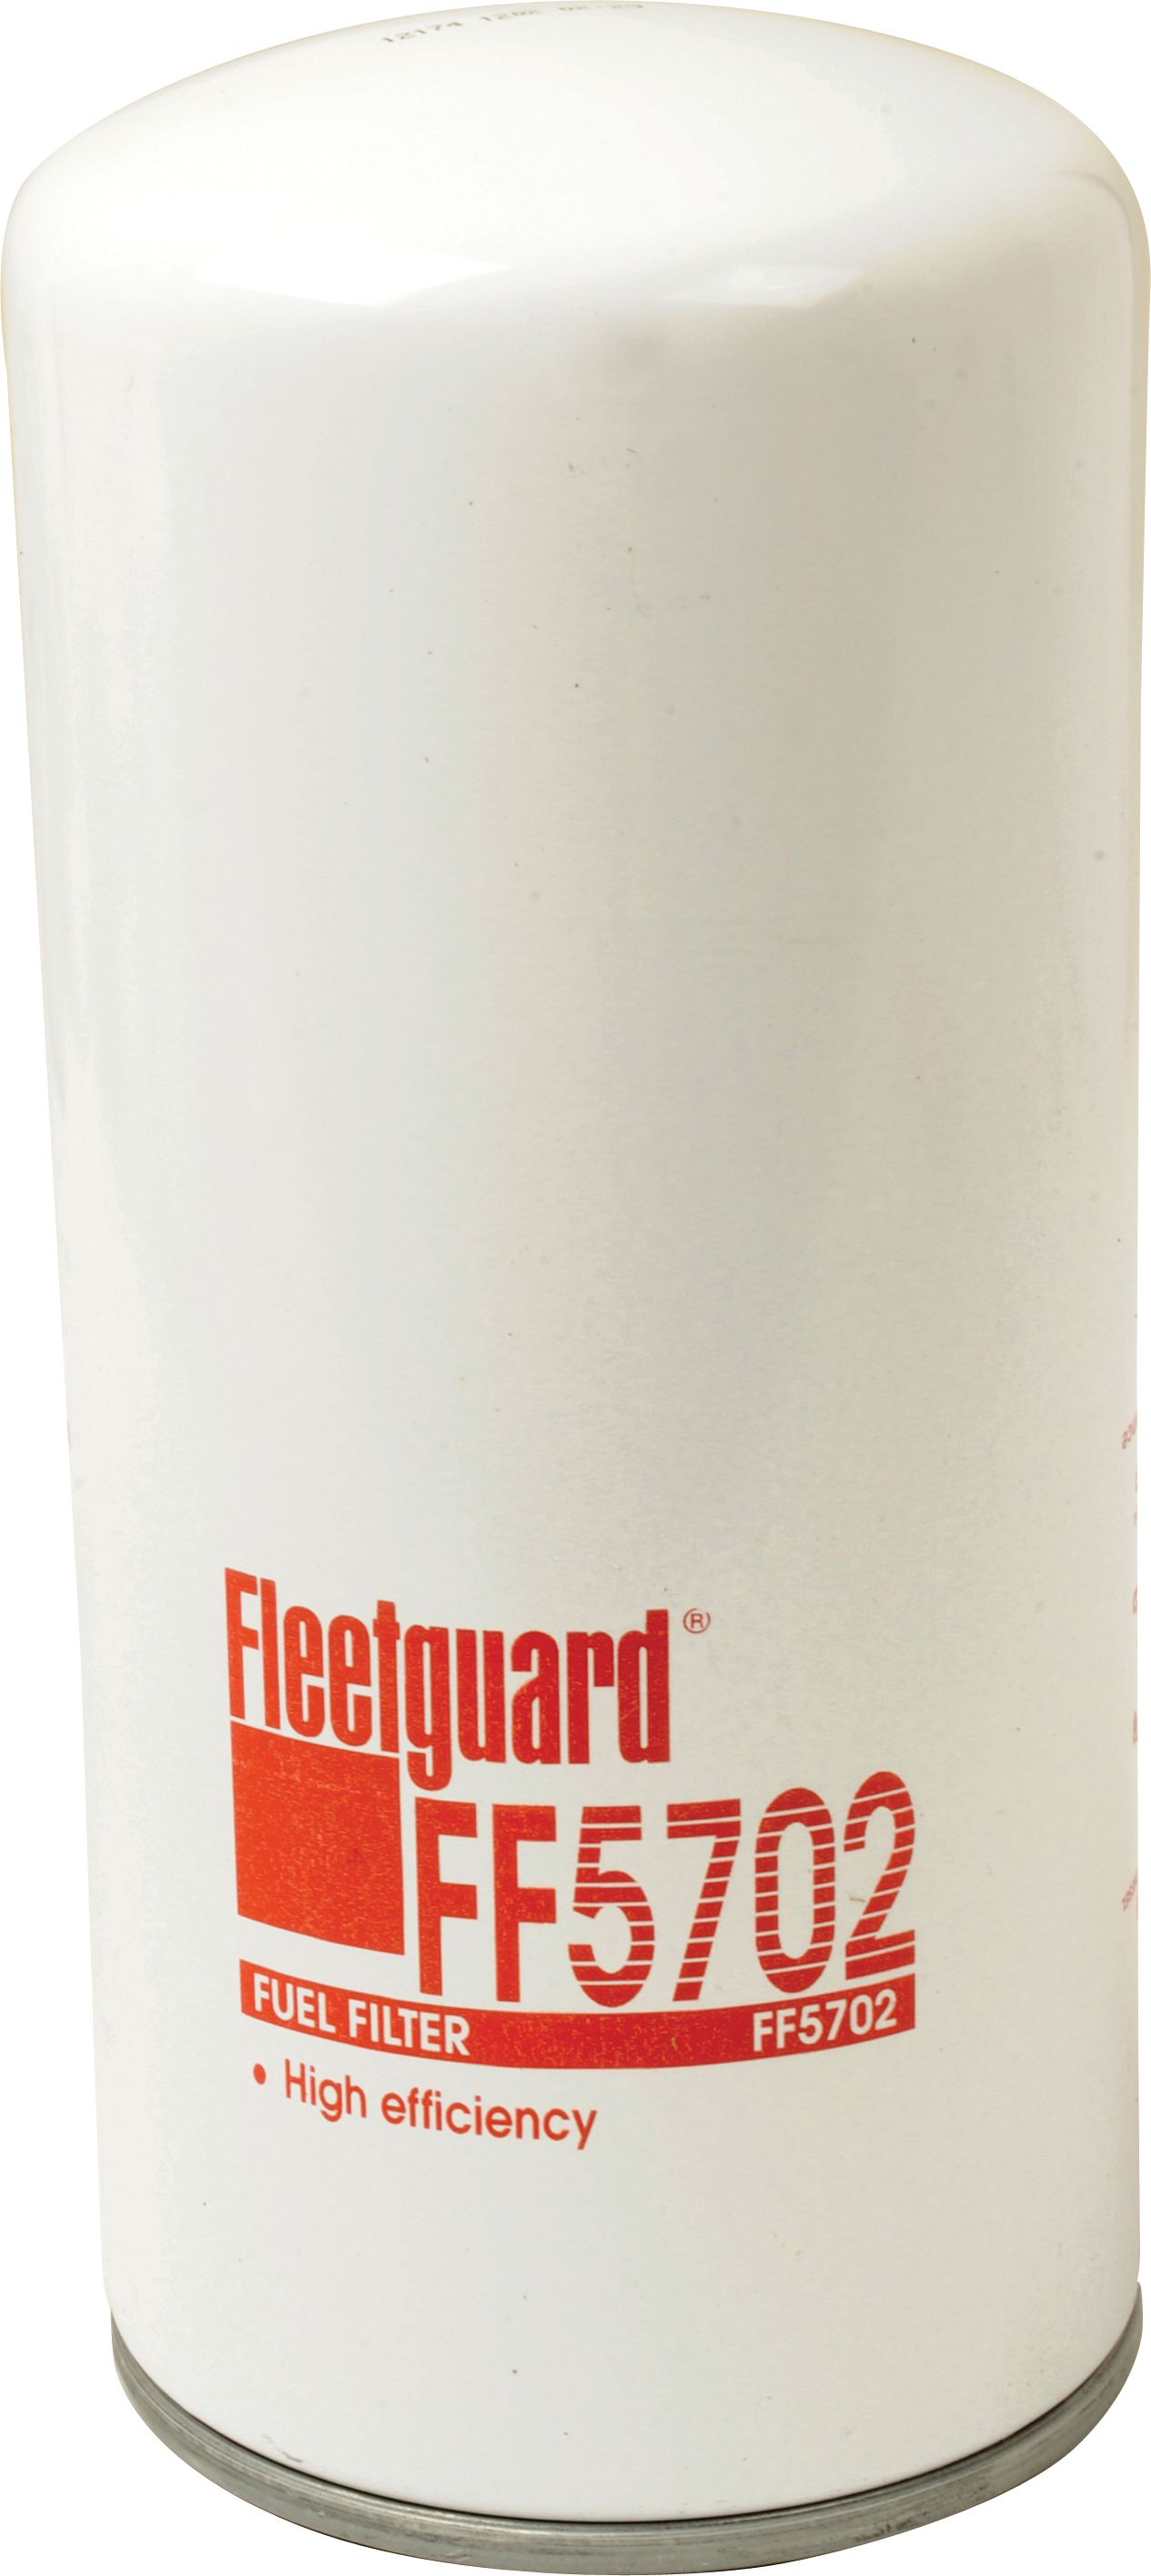 Buy Fendt Parts Free Uk Delivery Buyanypart Any Part Webb Fuel Filters Filter Ff5702